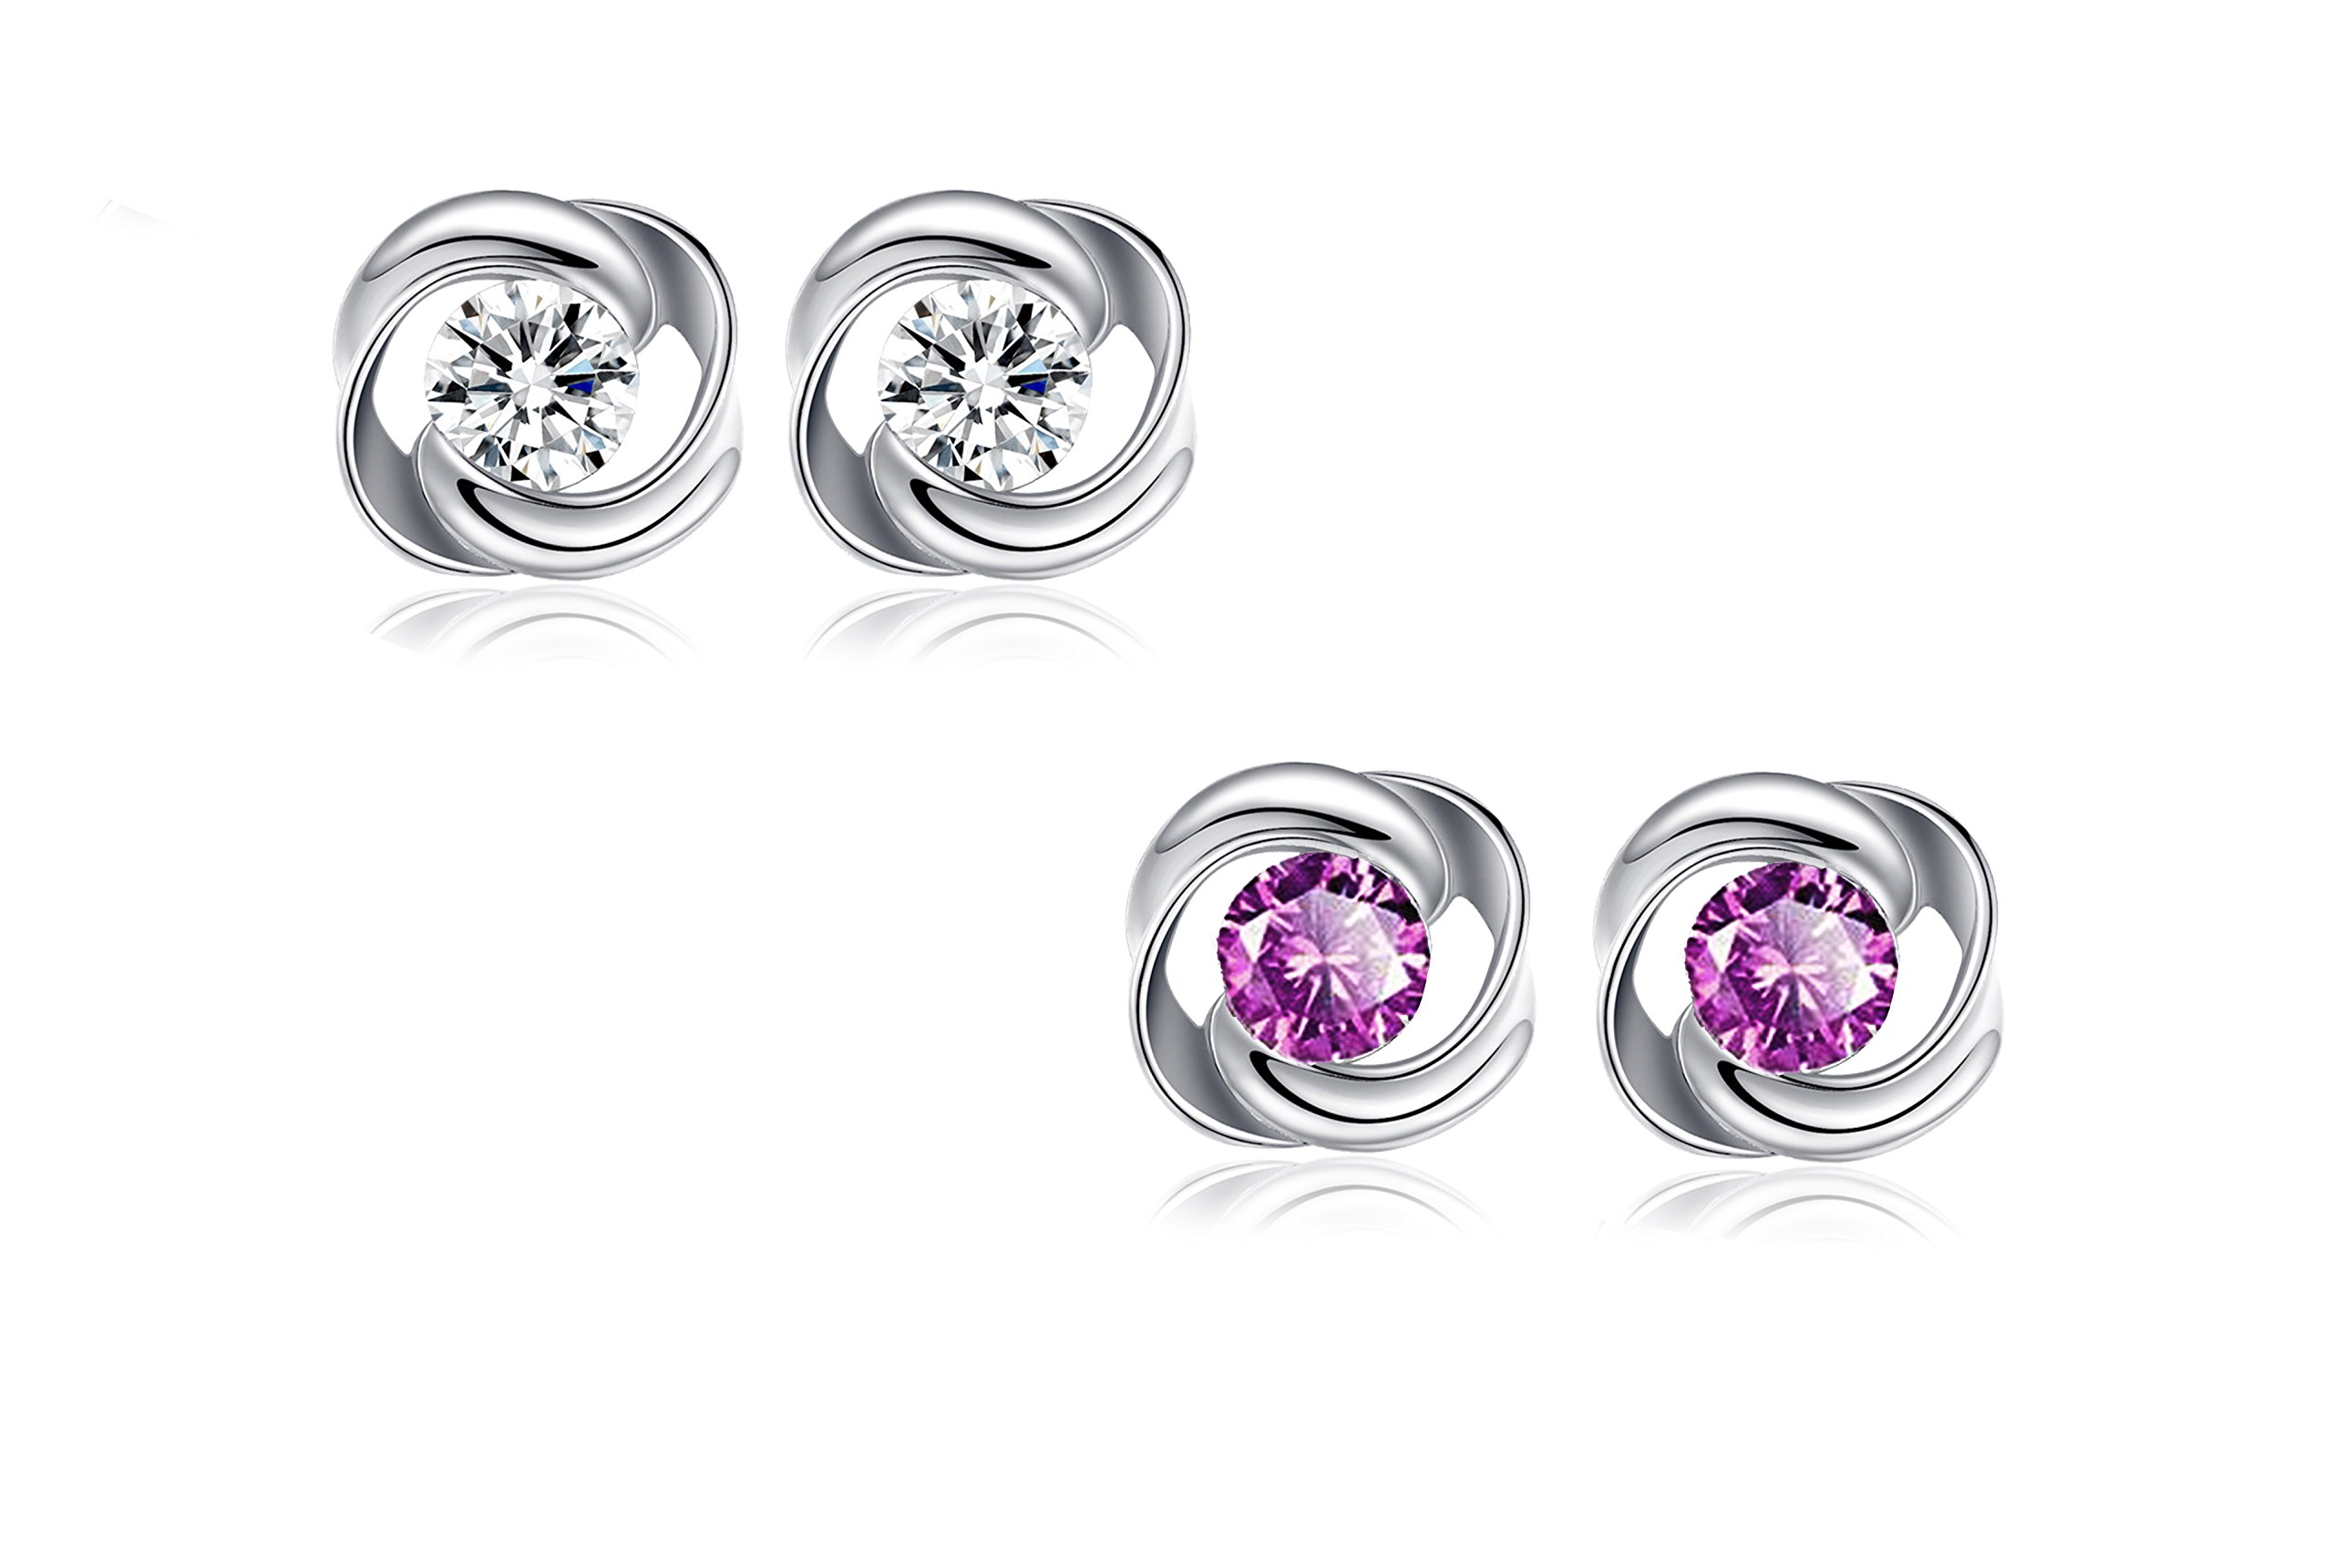 925 Sterling Silver and White Gold Plated Rose Flower Fashion Stud Earrings with Purple Crystal in 2 sets